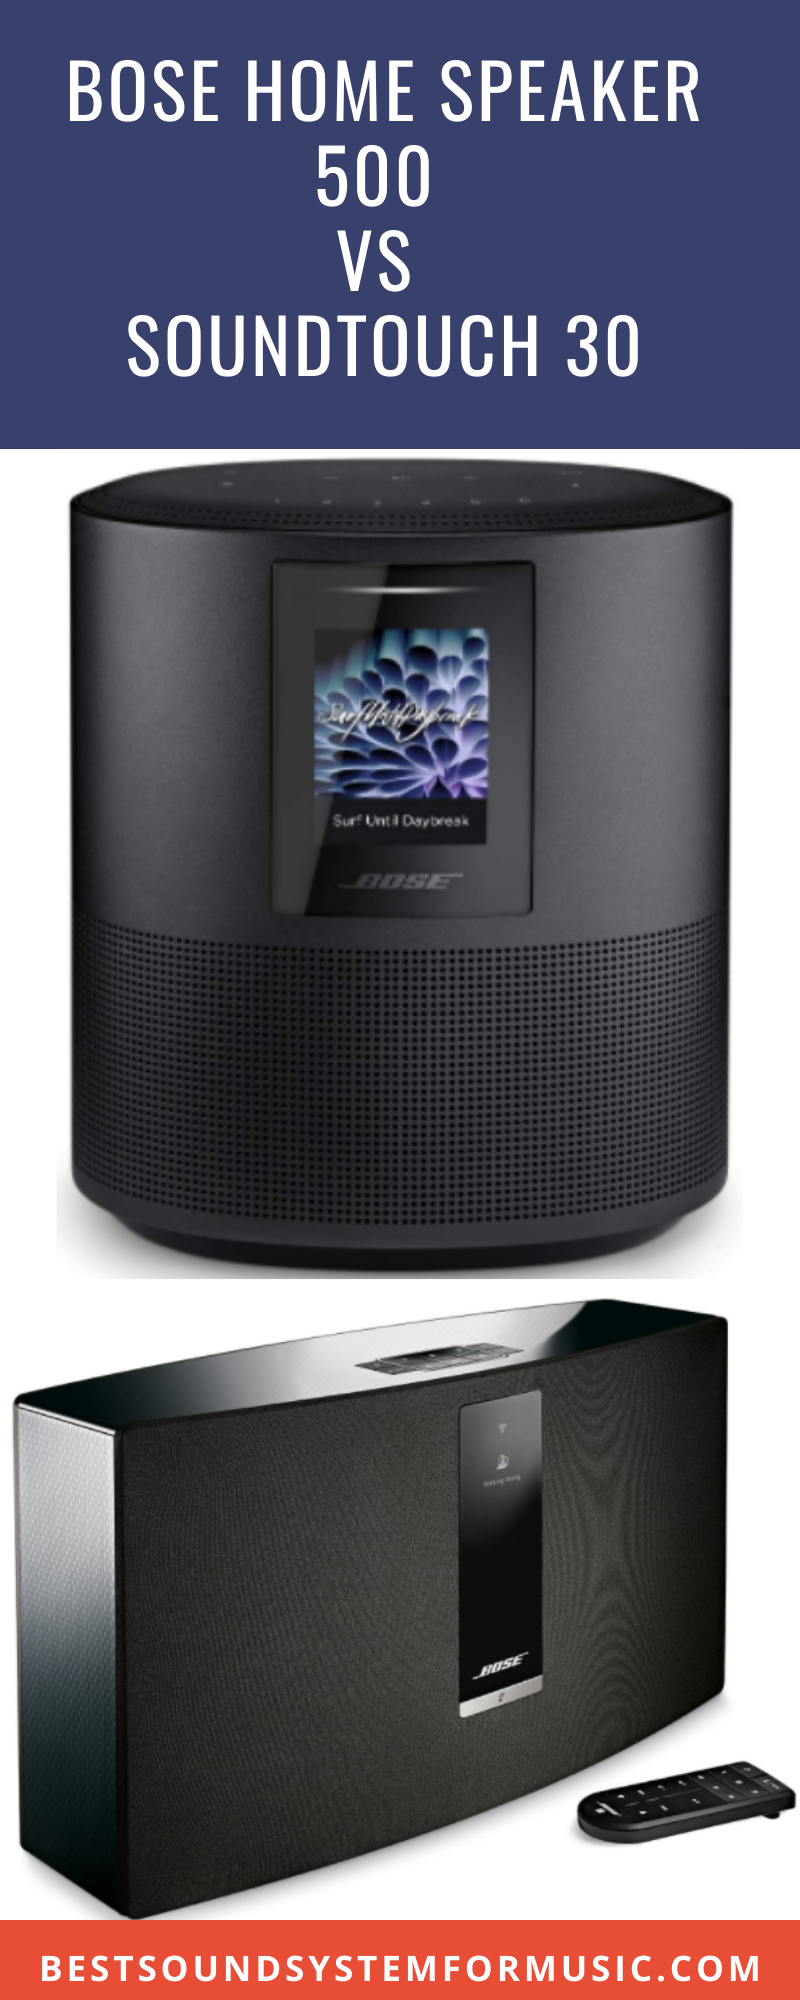 Bose Home Speaker 500 Vs Soundtouch 30 reviews